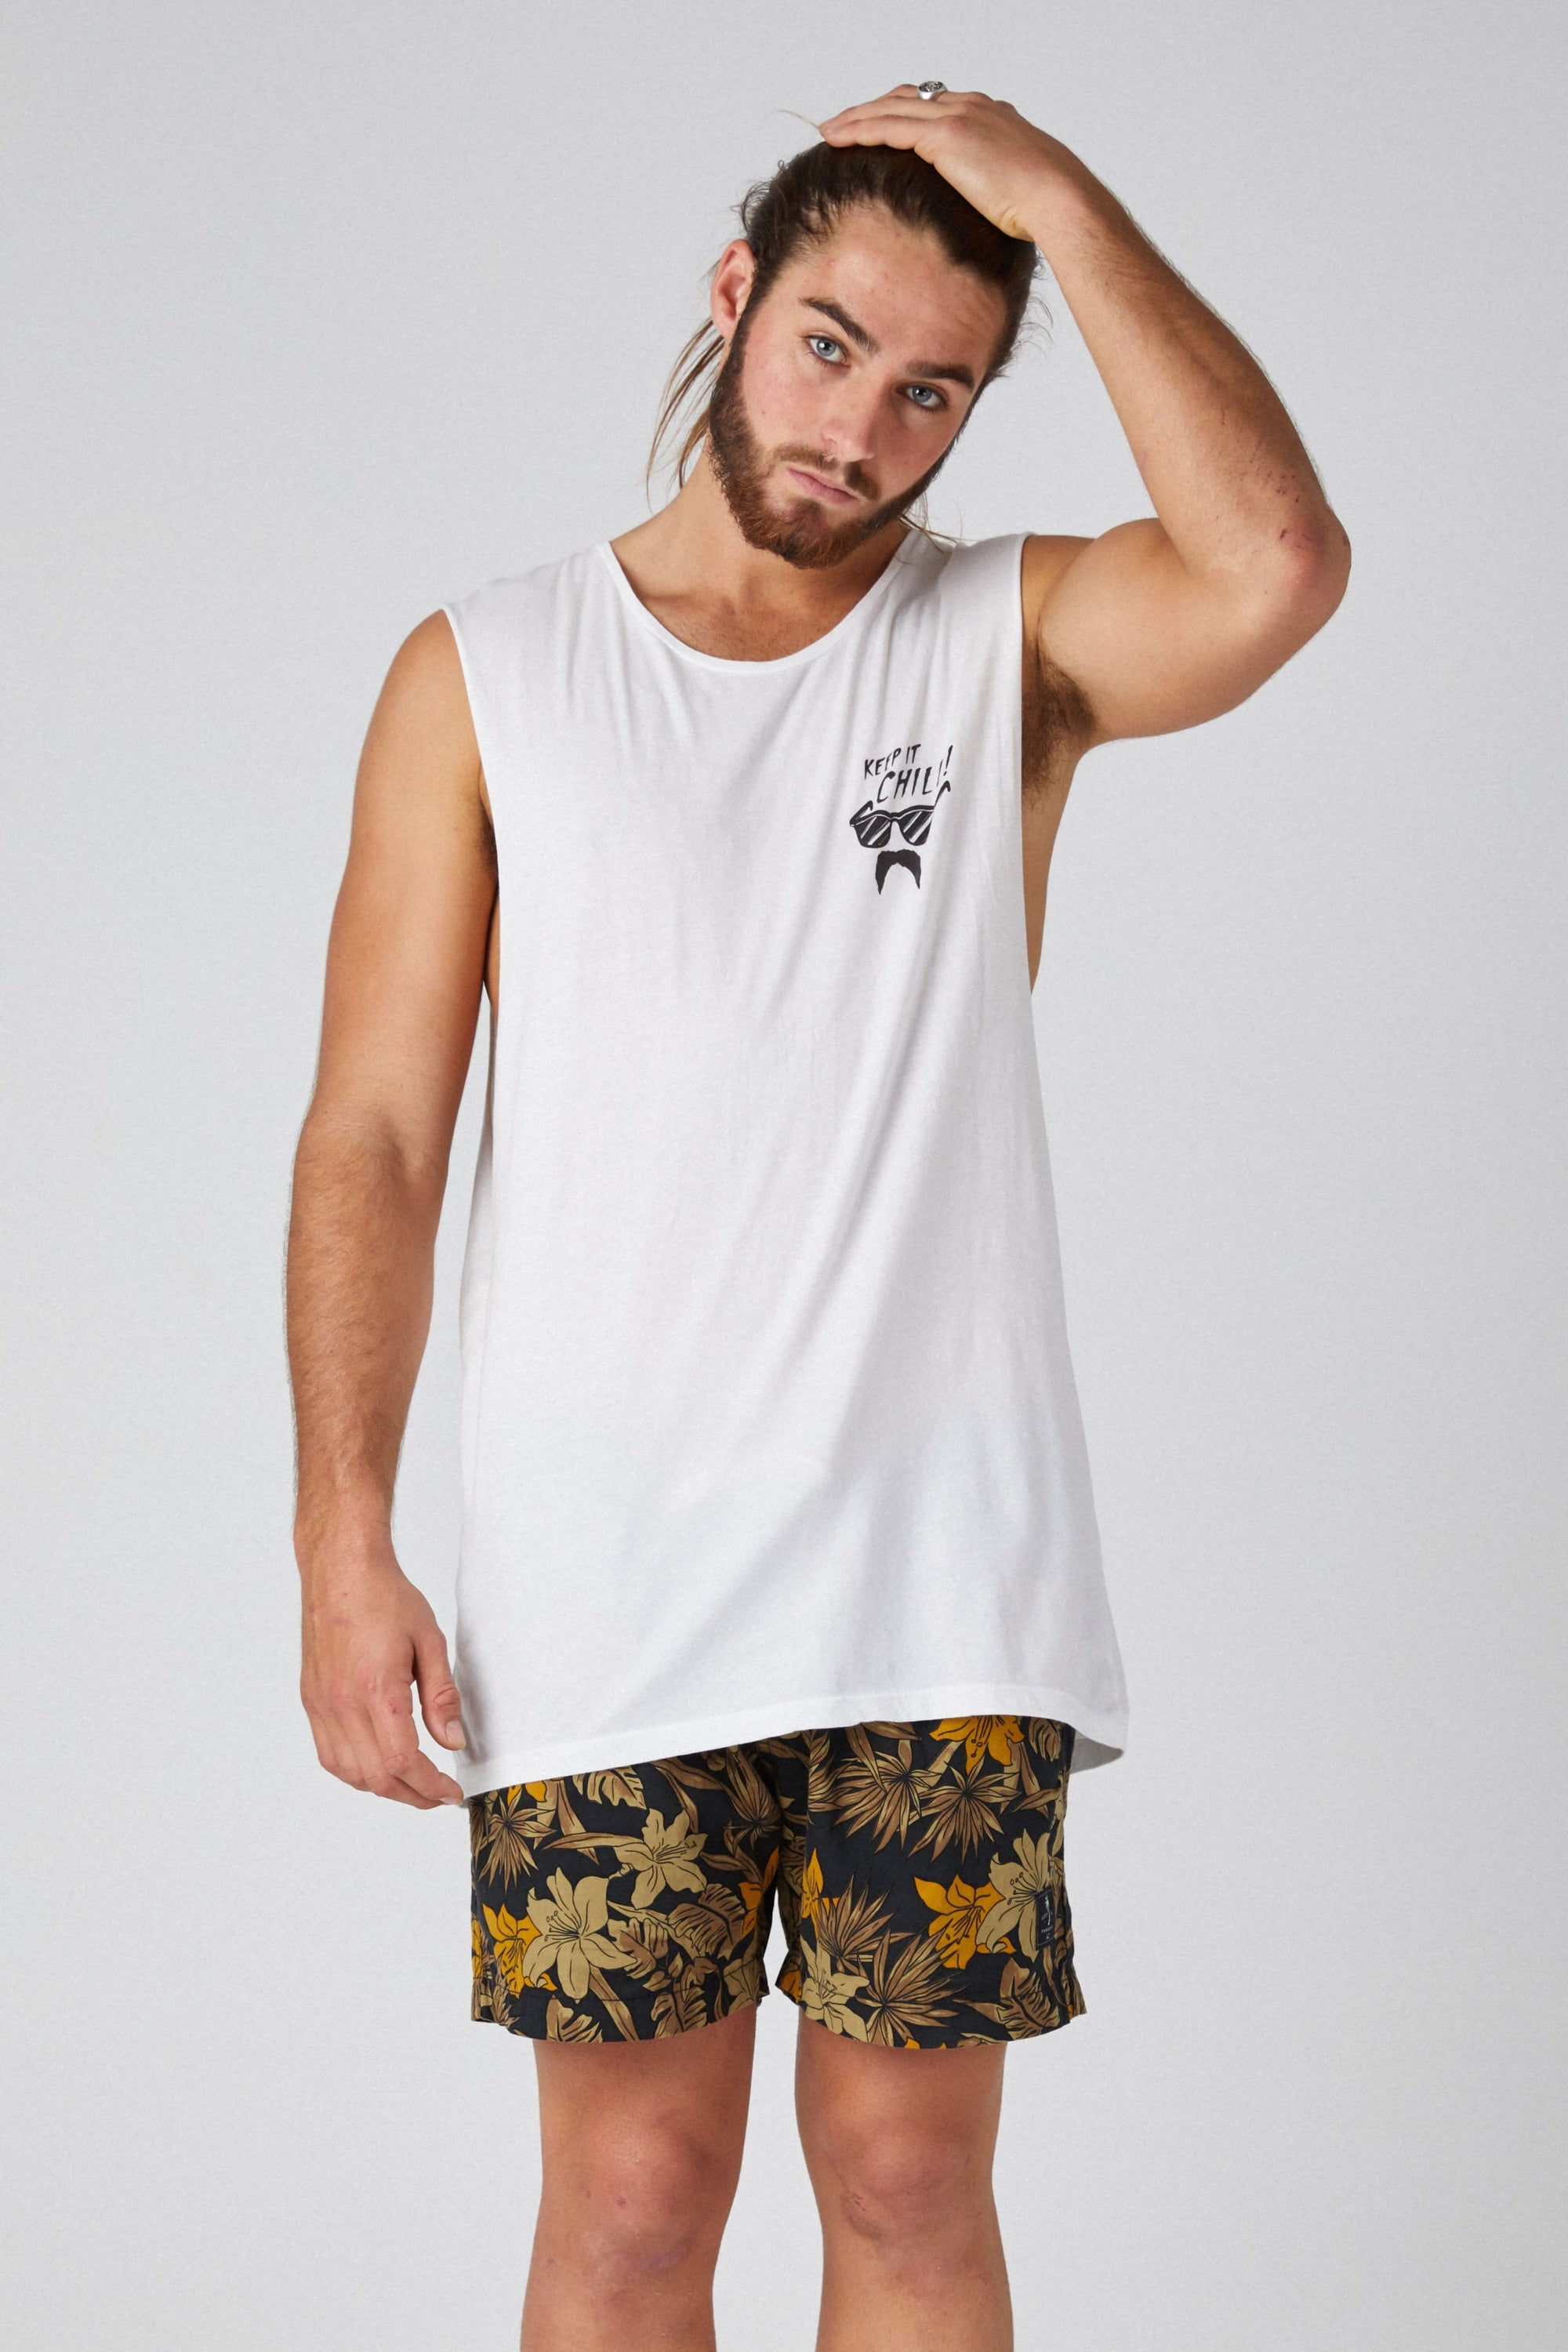 Sm Keep It - Mens Muscle Tank - LOST IN PARADISE